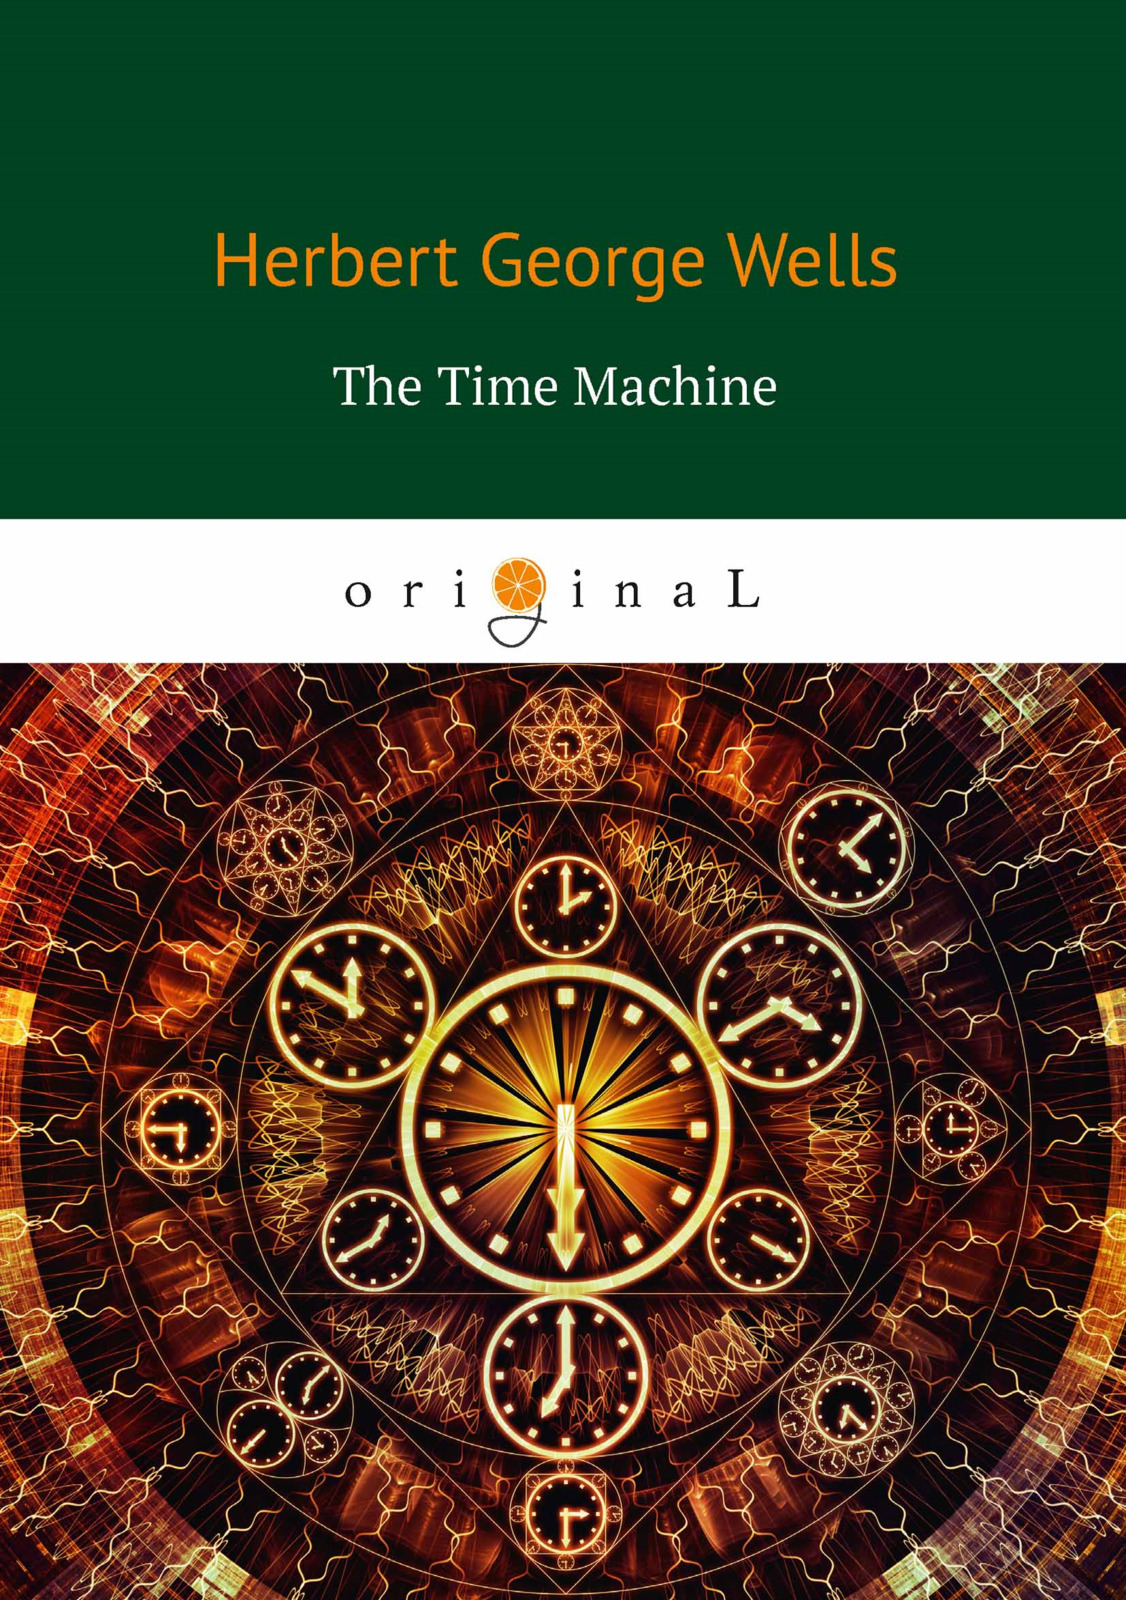 H. G. Wells The Time Machine wells herbert george the time machine isbn 978 5 521 00161 3